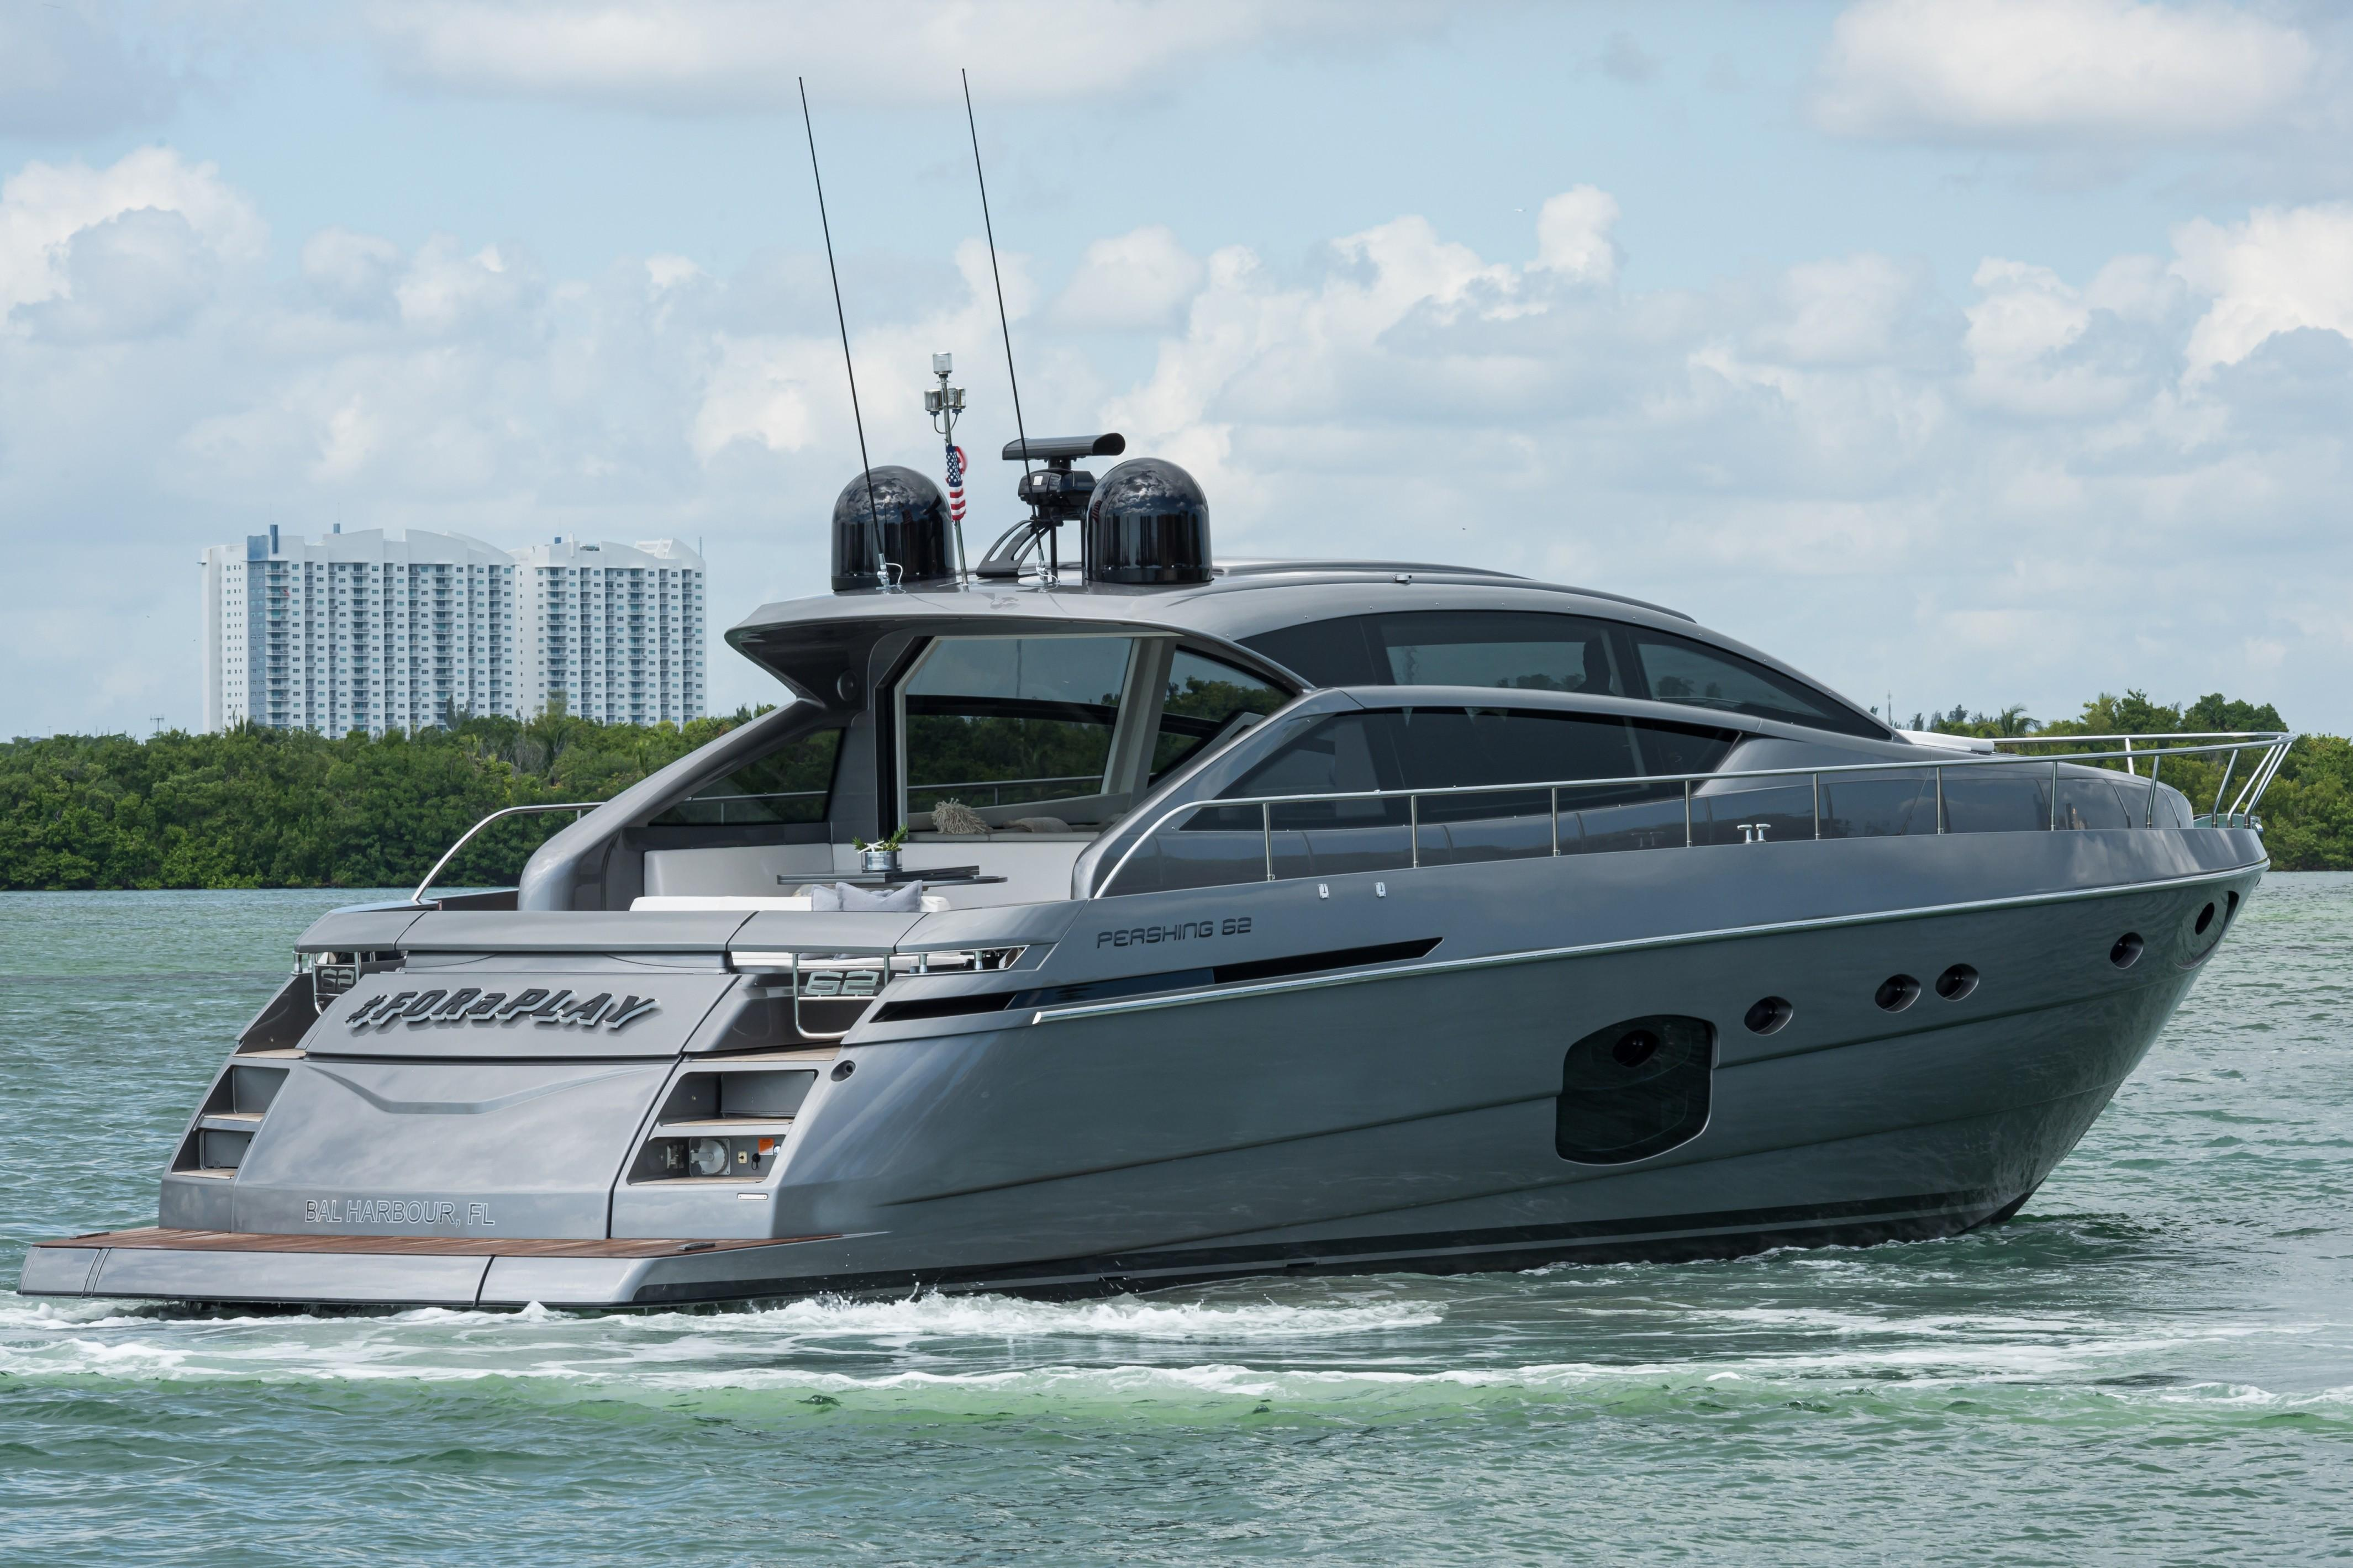 2016 Pershing 62 - Aft Profile